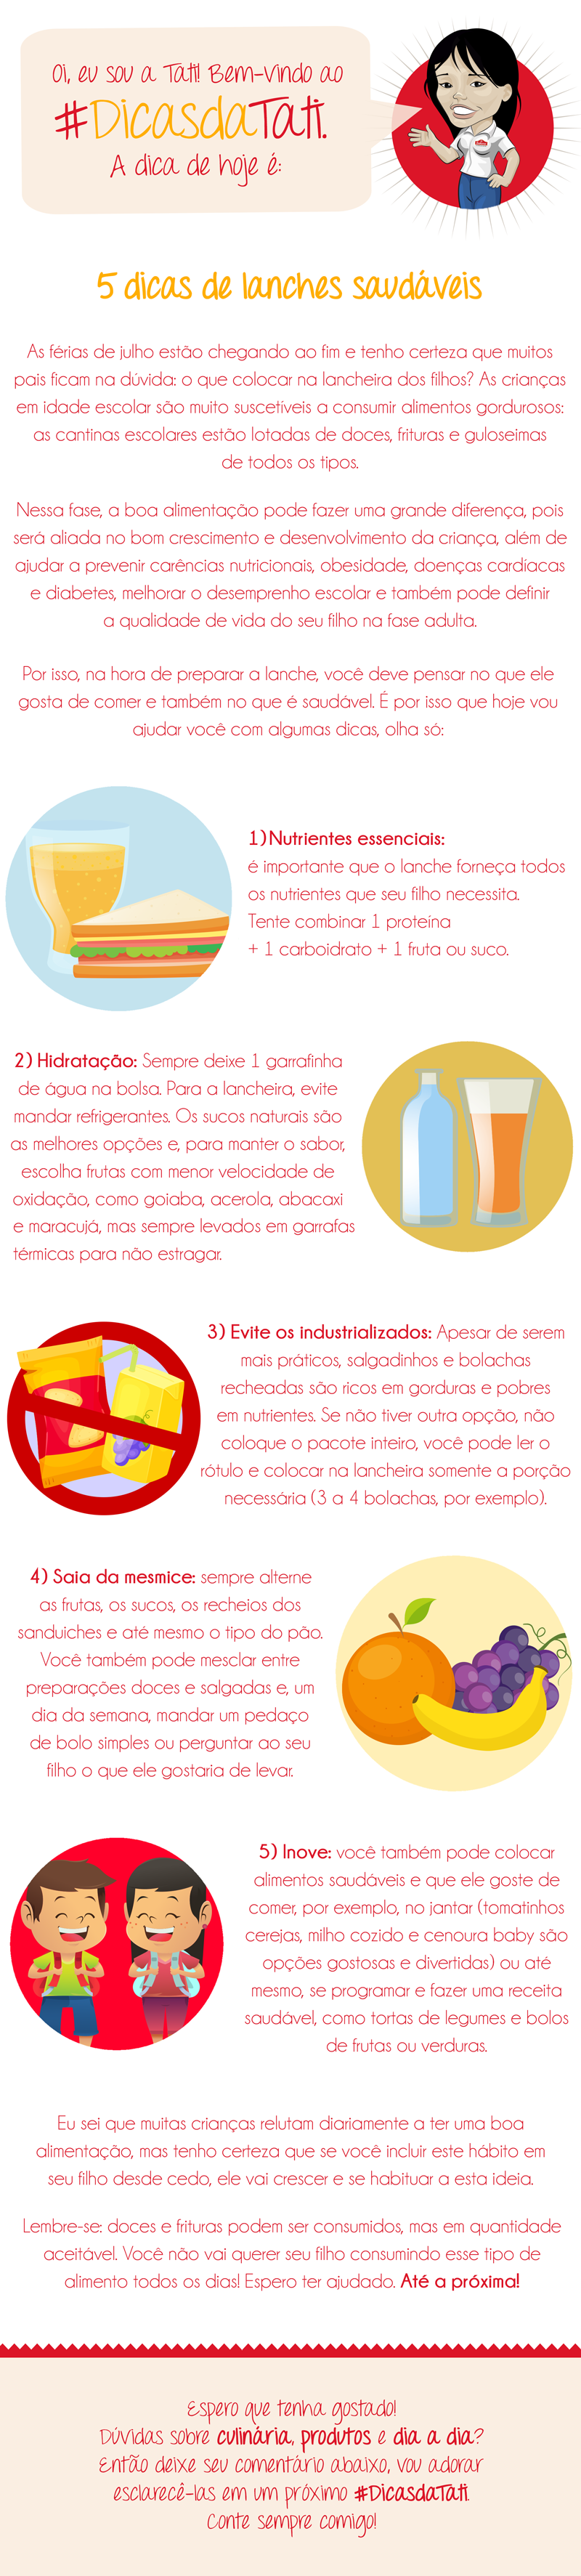 dicas_5dicaslanches